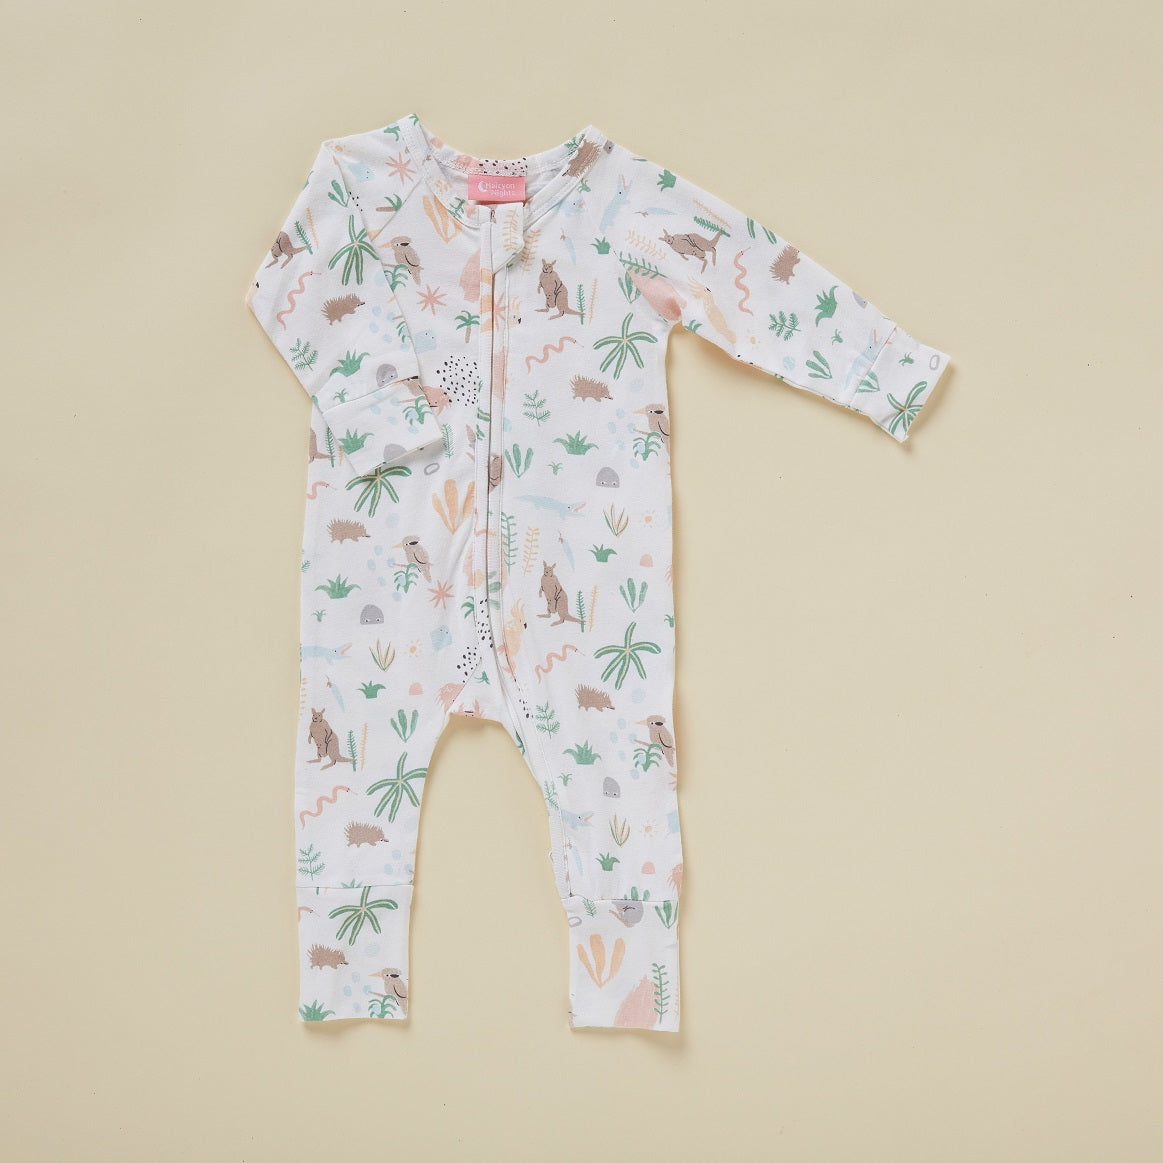 Outback Dreamers Sleep Suit